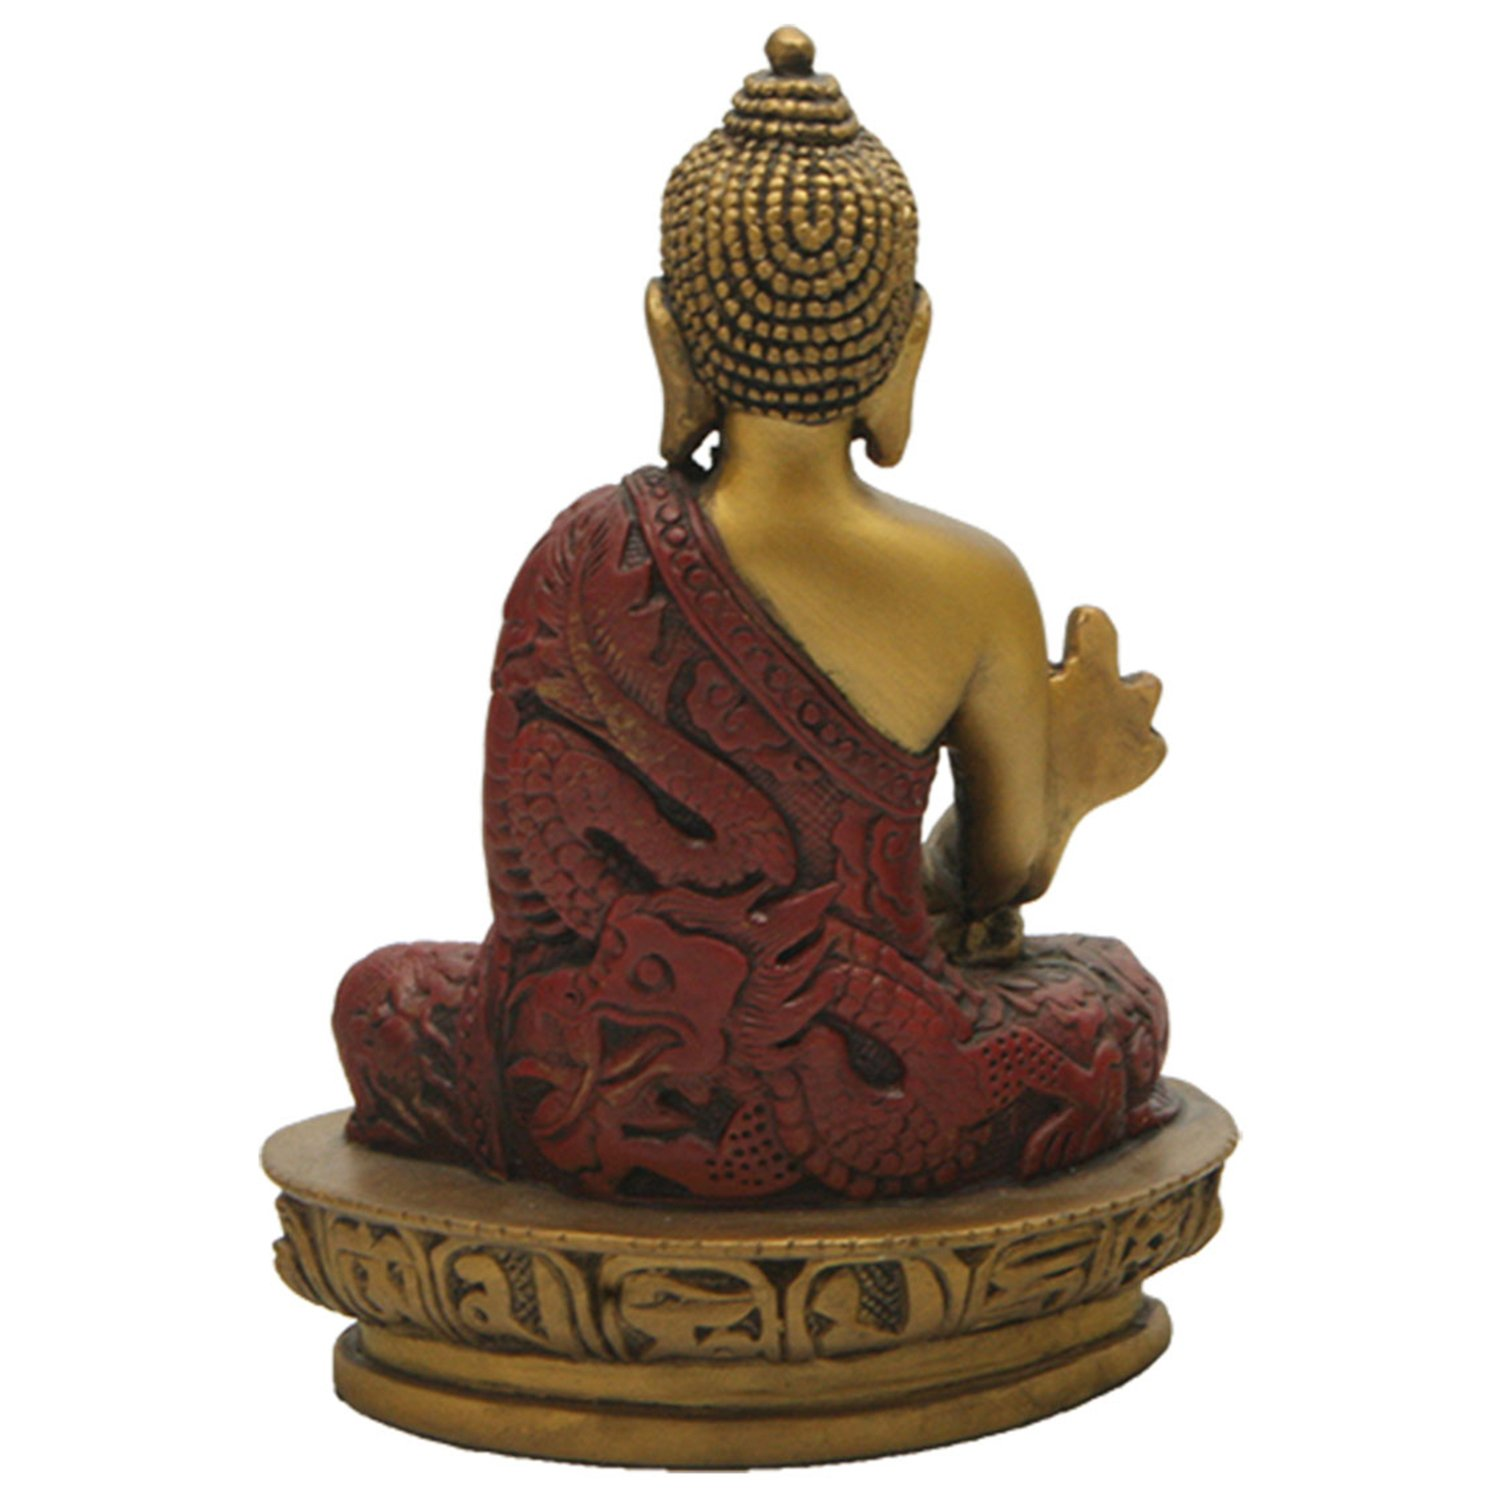 Amazoncom Medicine Buddha Statue With Gold Color Detail, 5 Inches